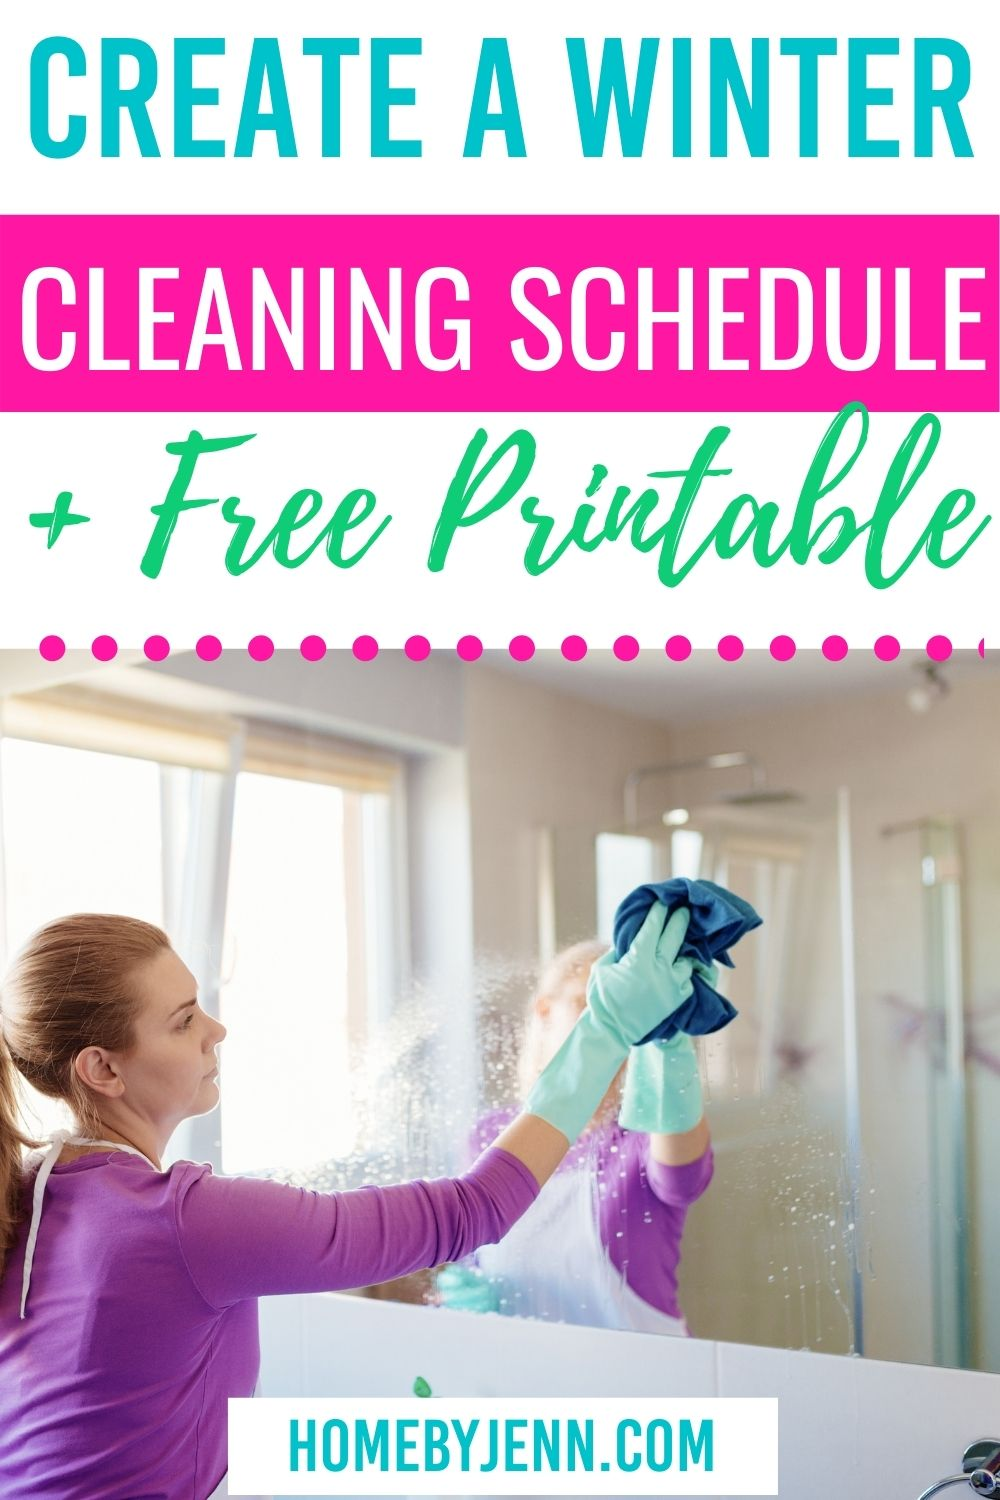 Make the winter cleaning a breeze by setting up a winter cleaning schedule. This easy to follow winter cleaning schedule will help you keep your home clean and maintained for the winter months. #cleaningschedule #wintercleaning #getreadyforwinter . via @homebyjenn